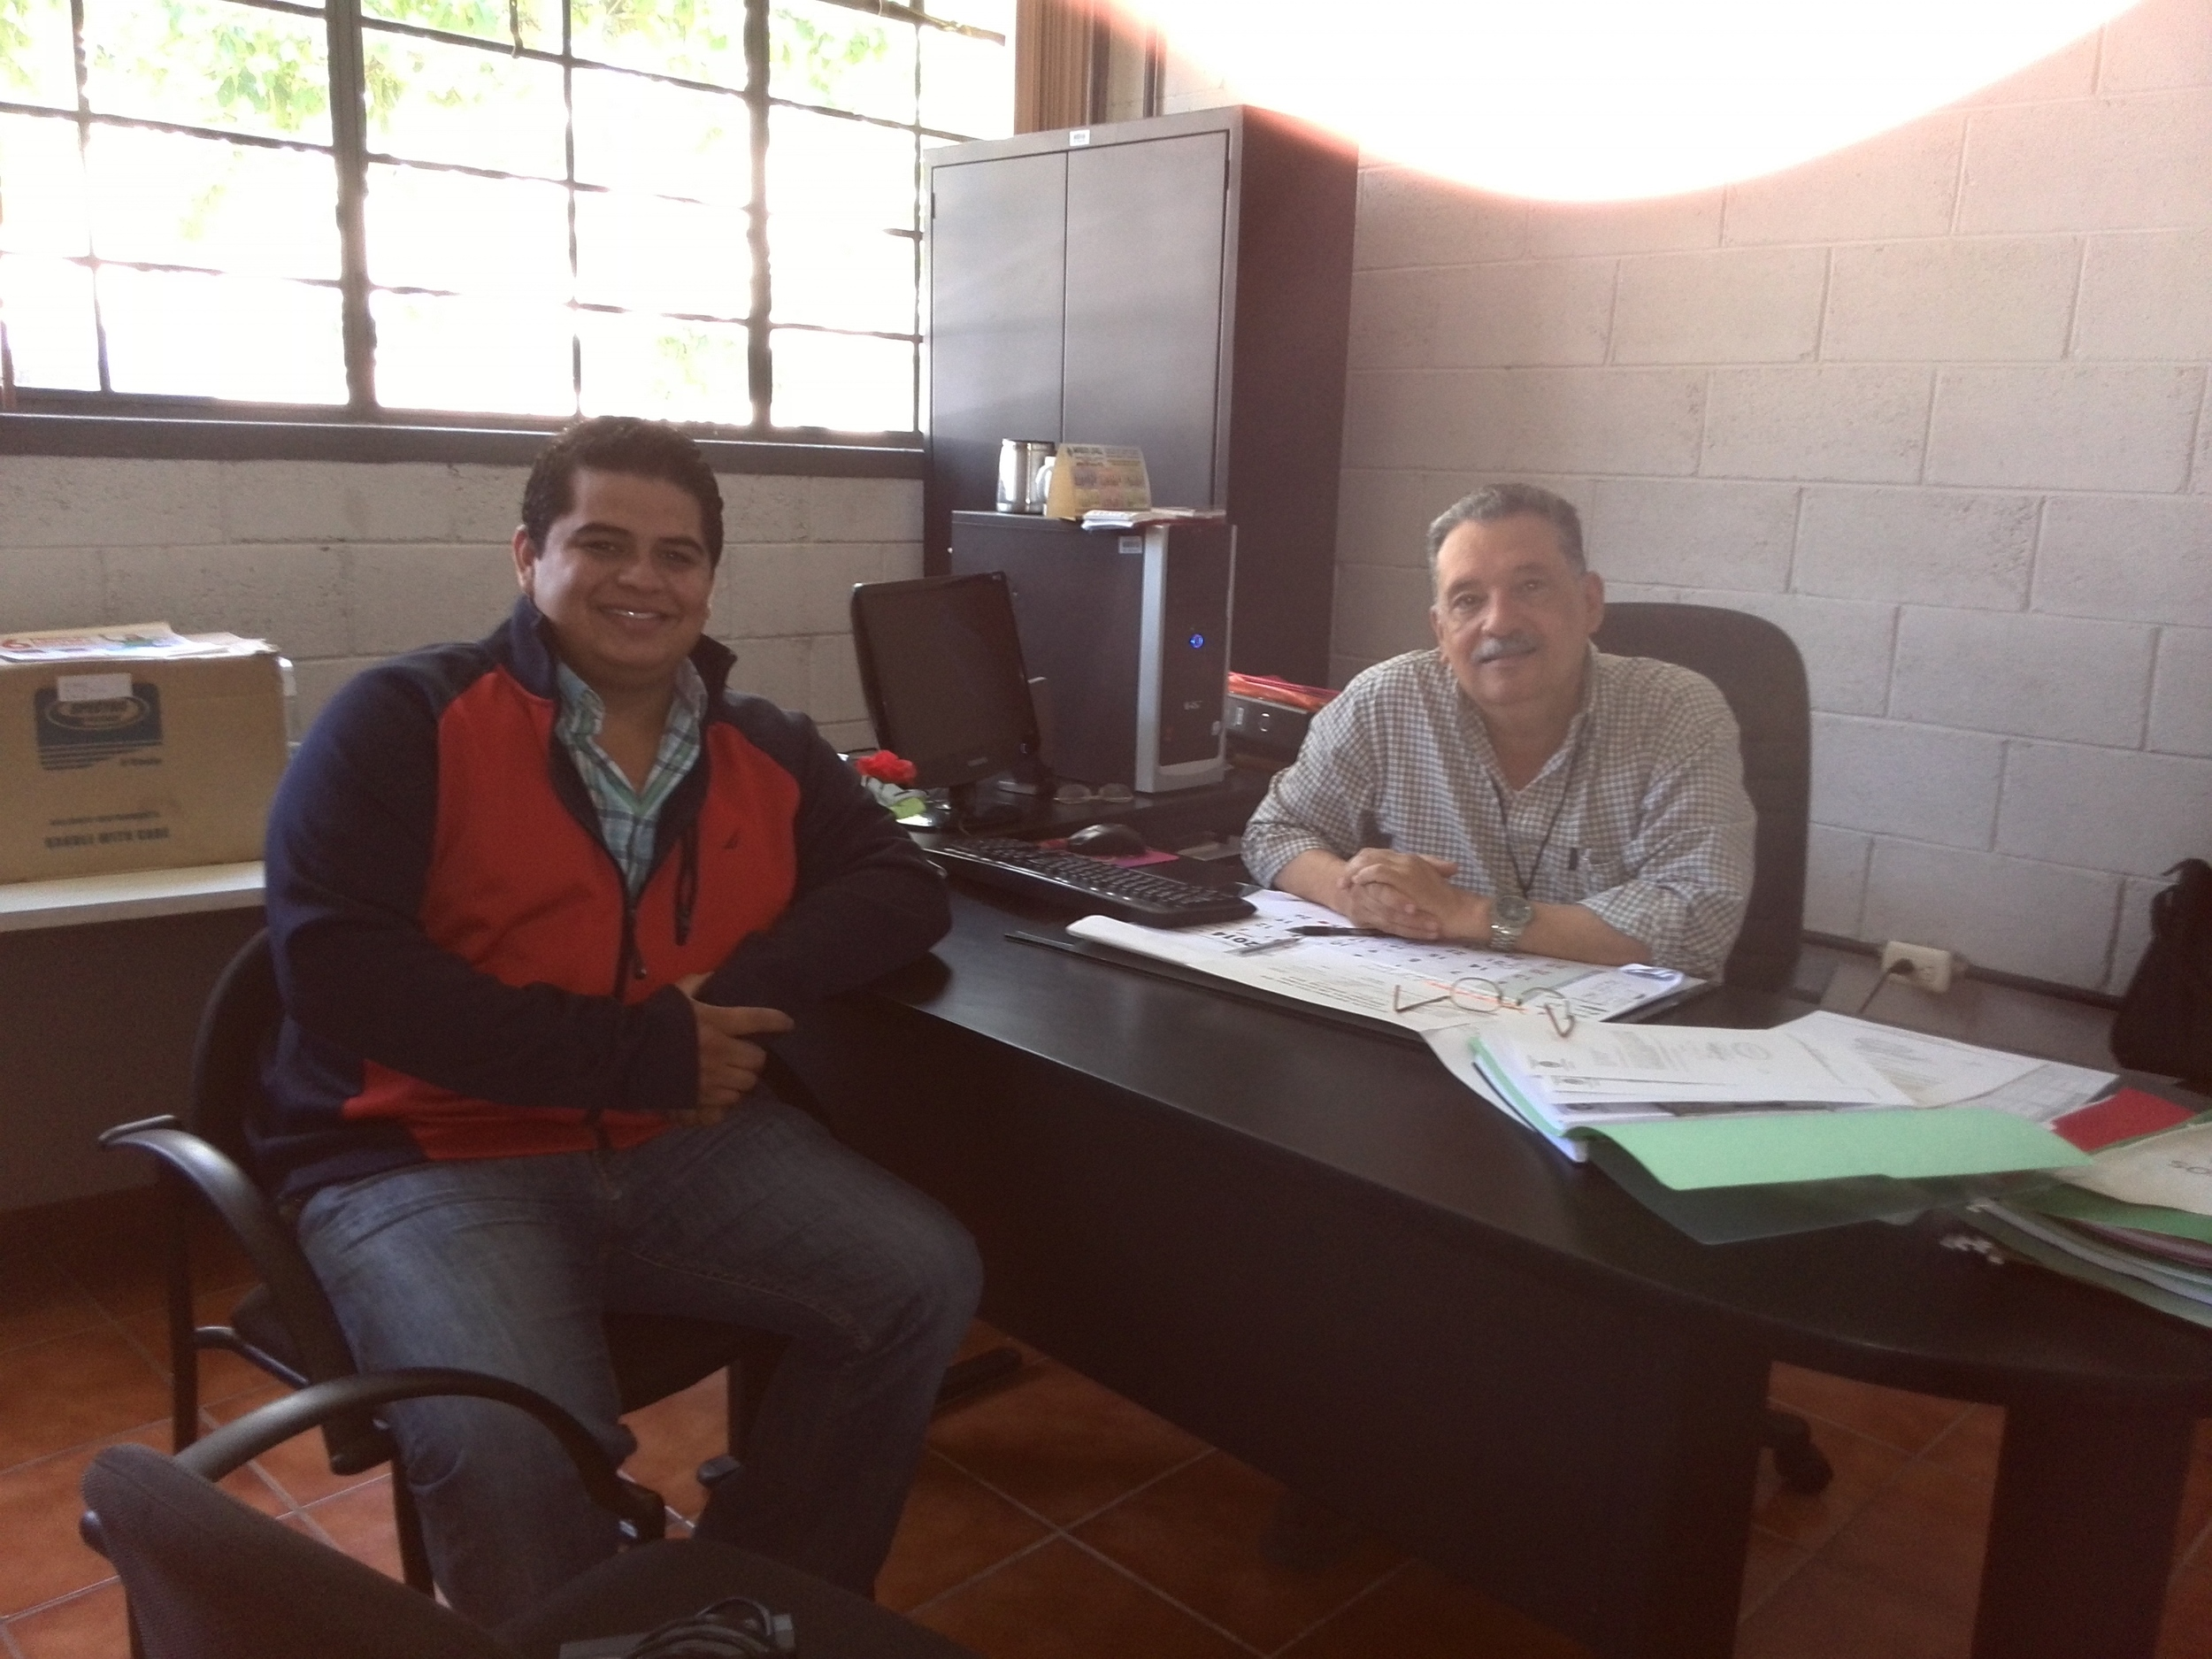 Rogelio meeting with Engineer Silvio Rodriguez, Professional Internship Director and Supervisor at San Carlos University, to discuss the conflict surveys he will be conducting in Santa Otilia as part of his internship program.